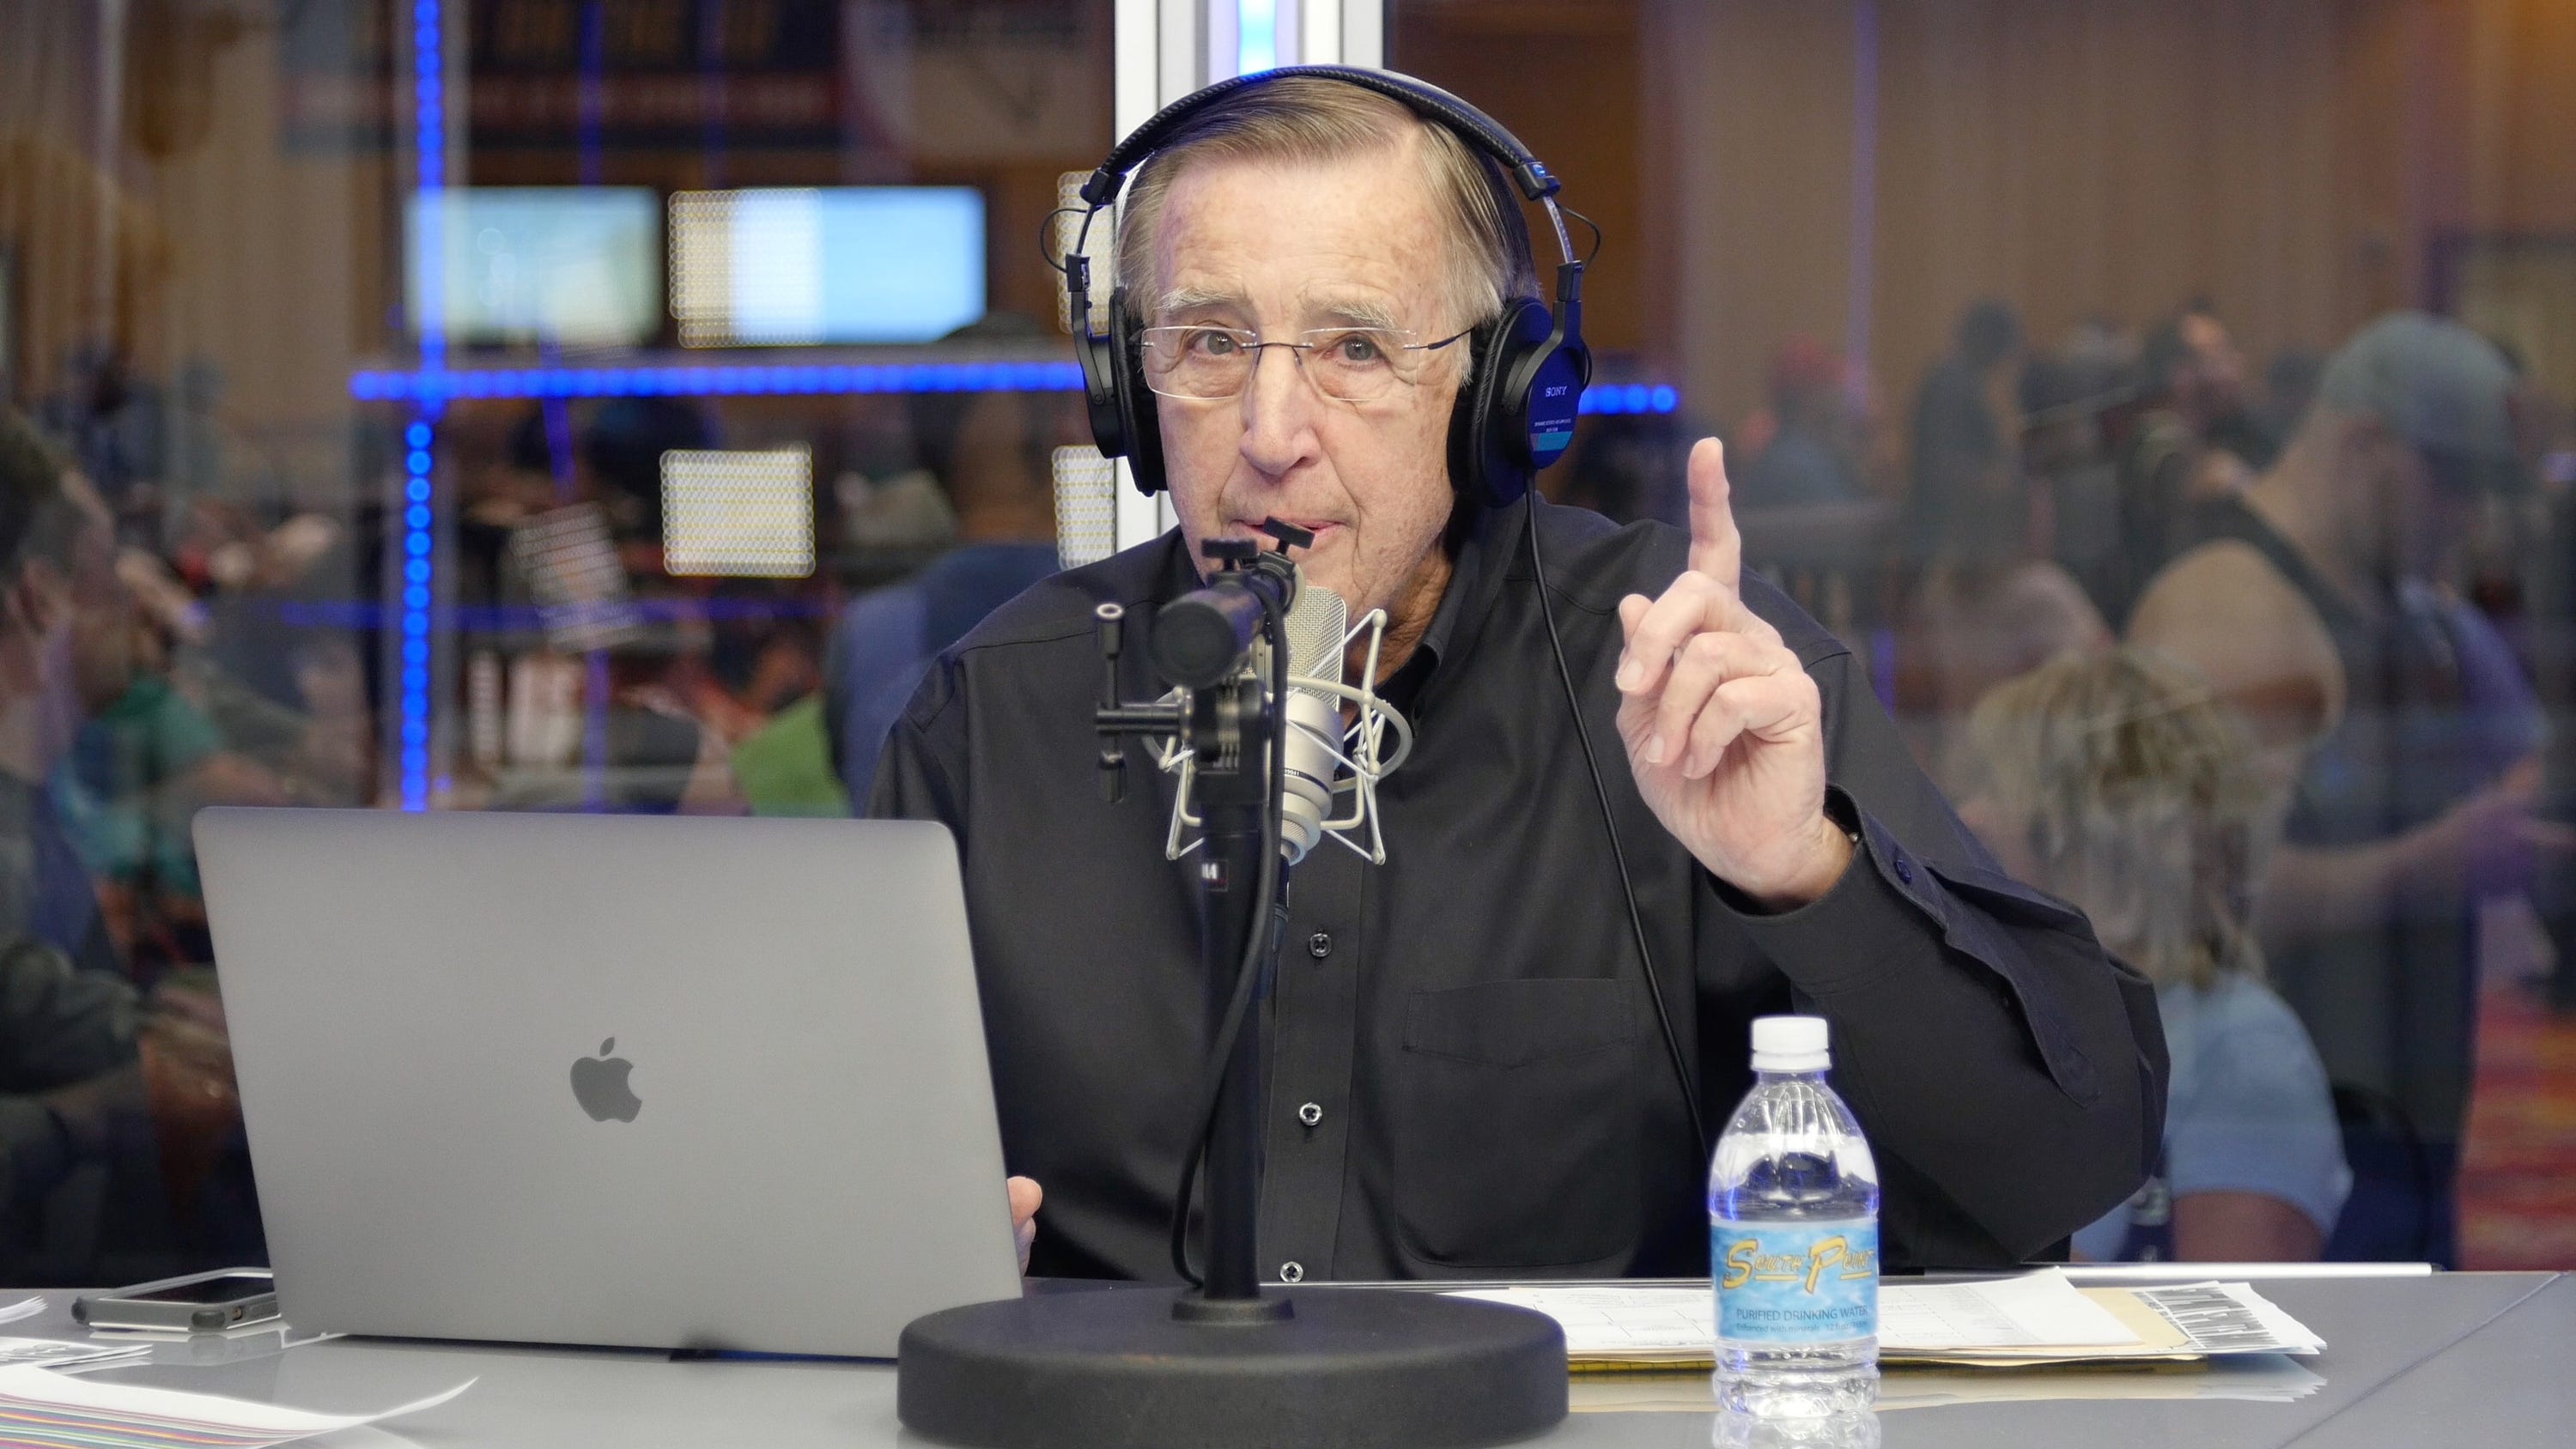 Brent Musburger, now Raiders play-by-play voice, welcomes AJ McCarron's 'beautiful' wife